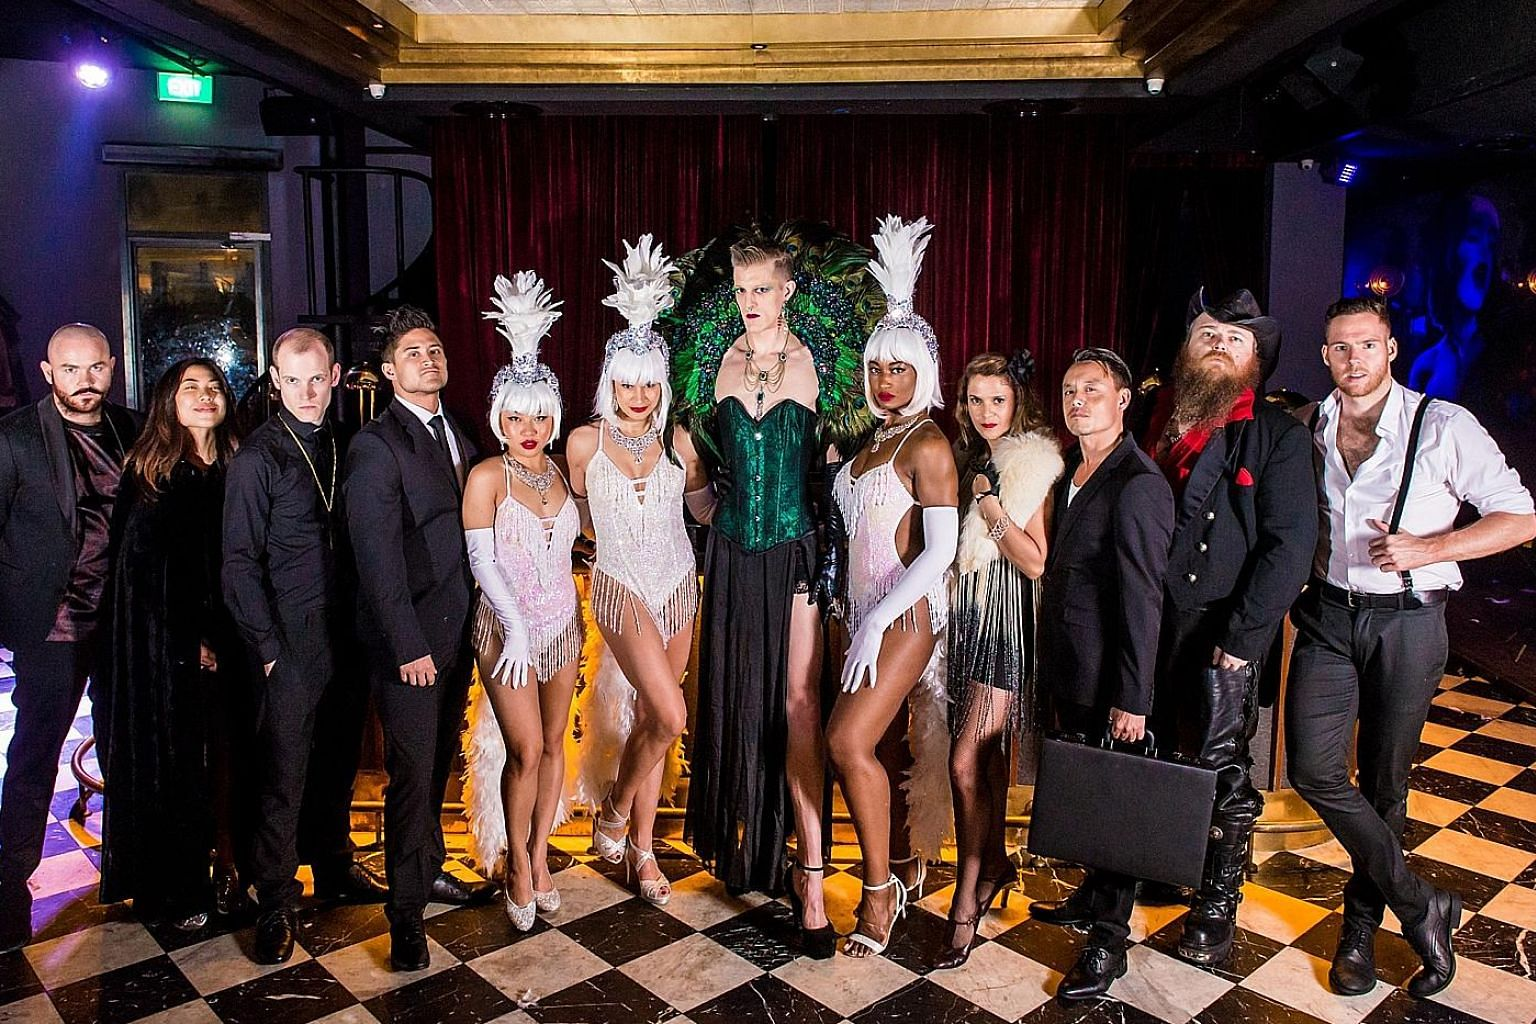 Engage, or watch, the cast of the Secret Theatre Project Singapore for a fun night out.